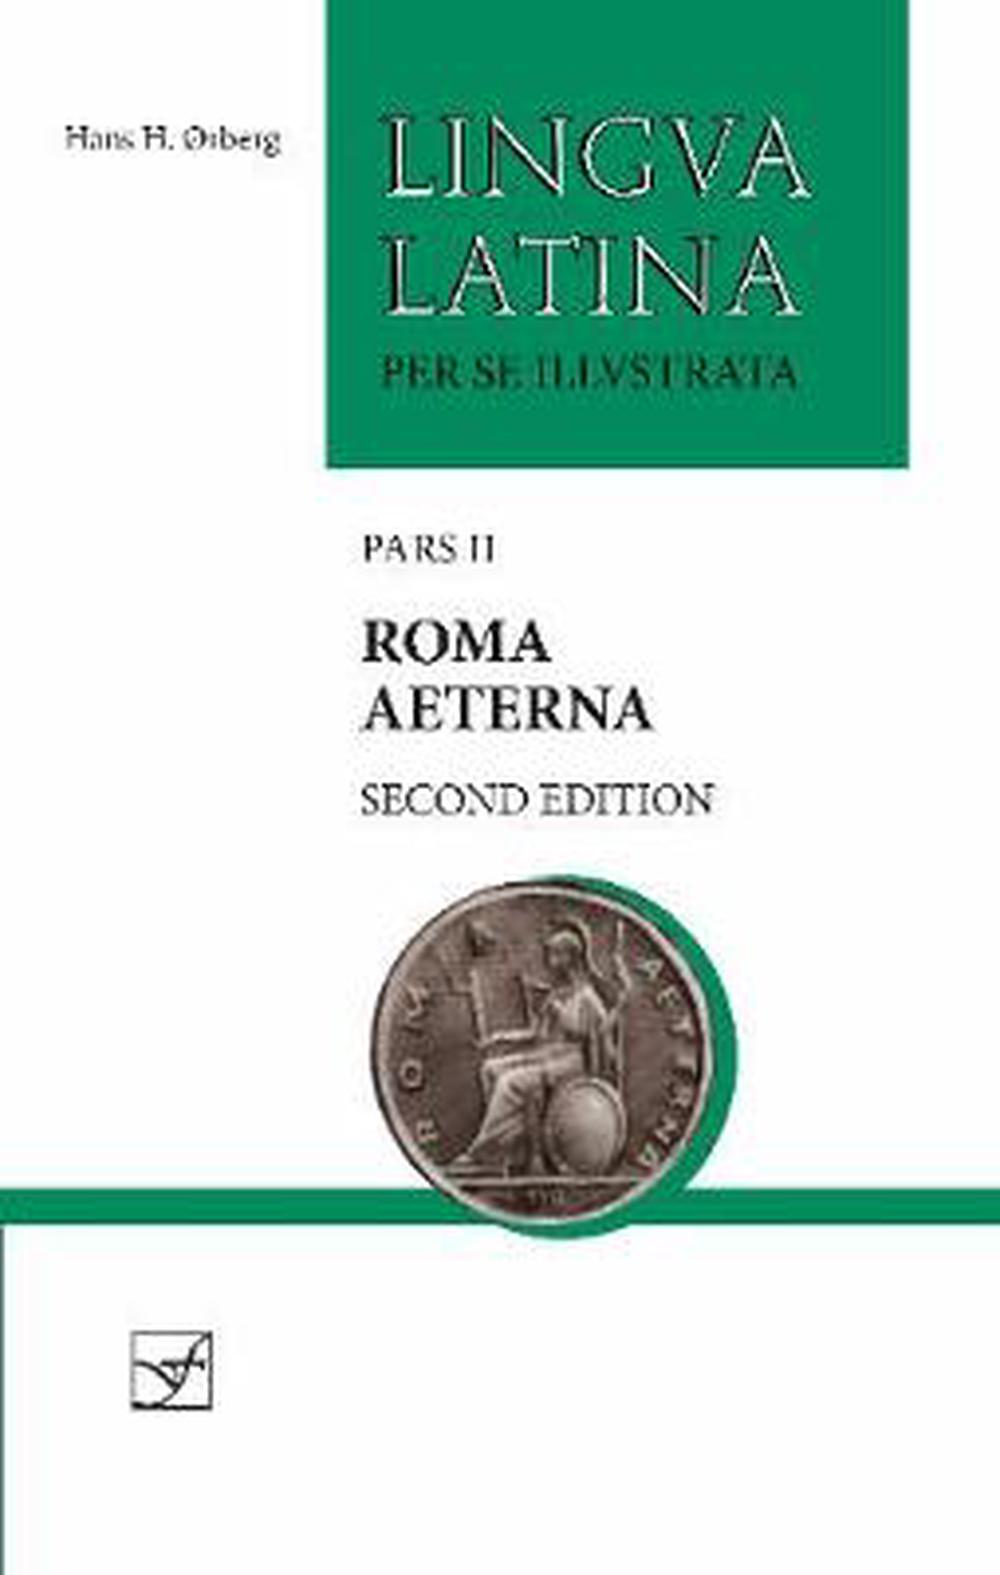 Roma Aeterna: With Full Color Illustrations (Lingua Latina)